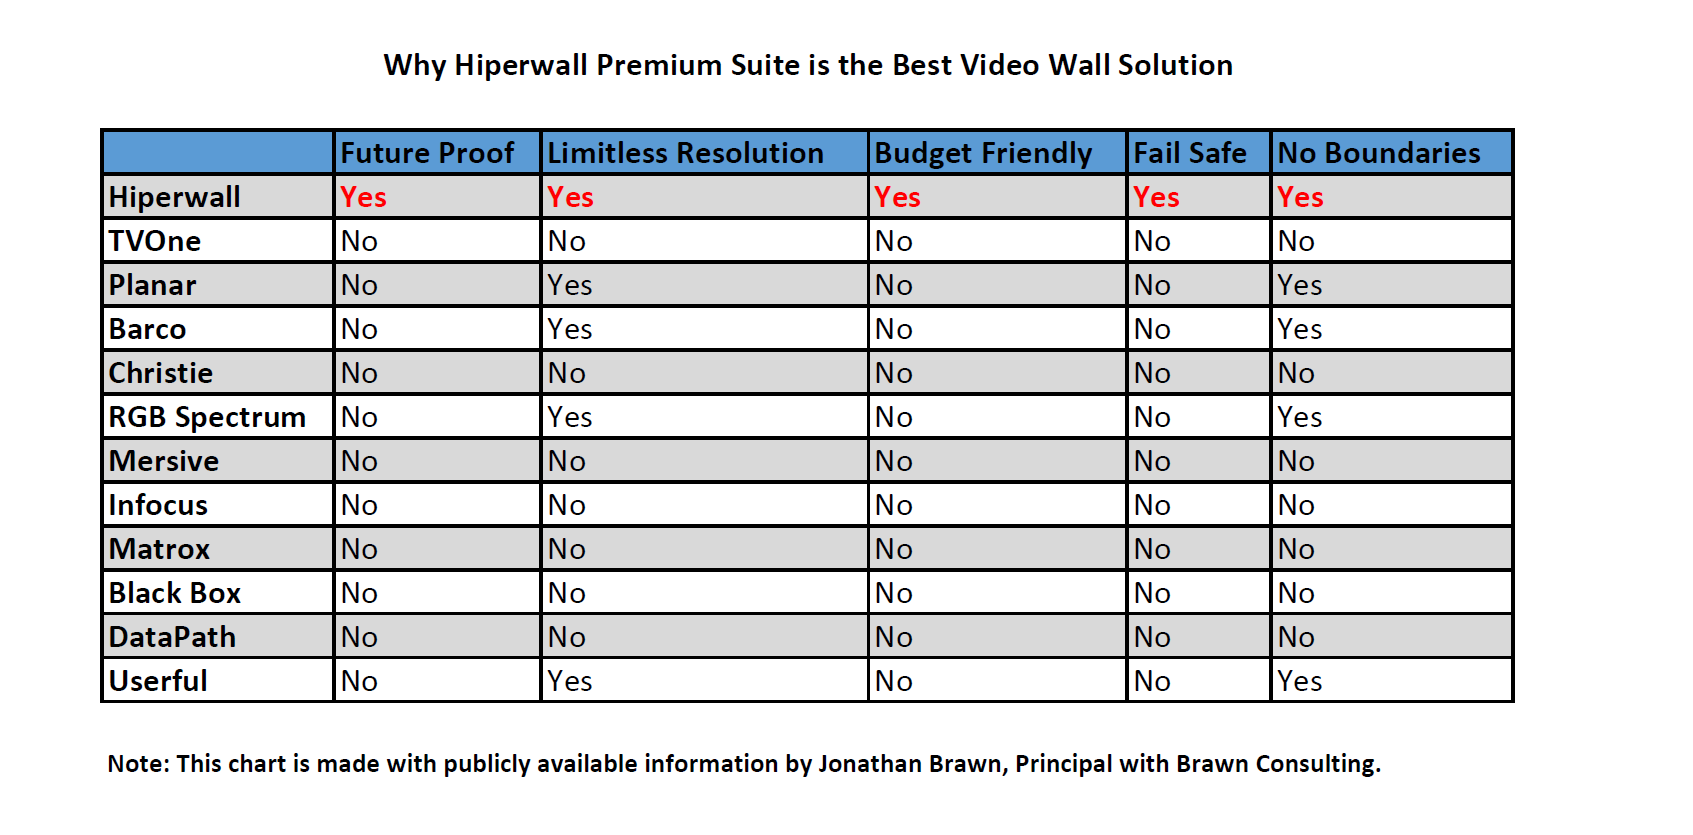 Why Hiperwall Premium Suite is the Best Video Wall Solution